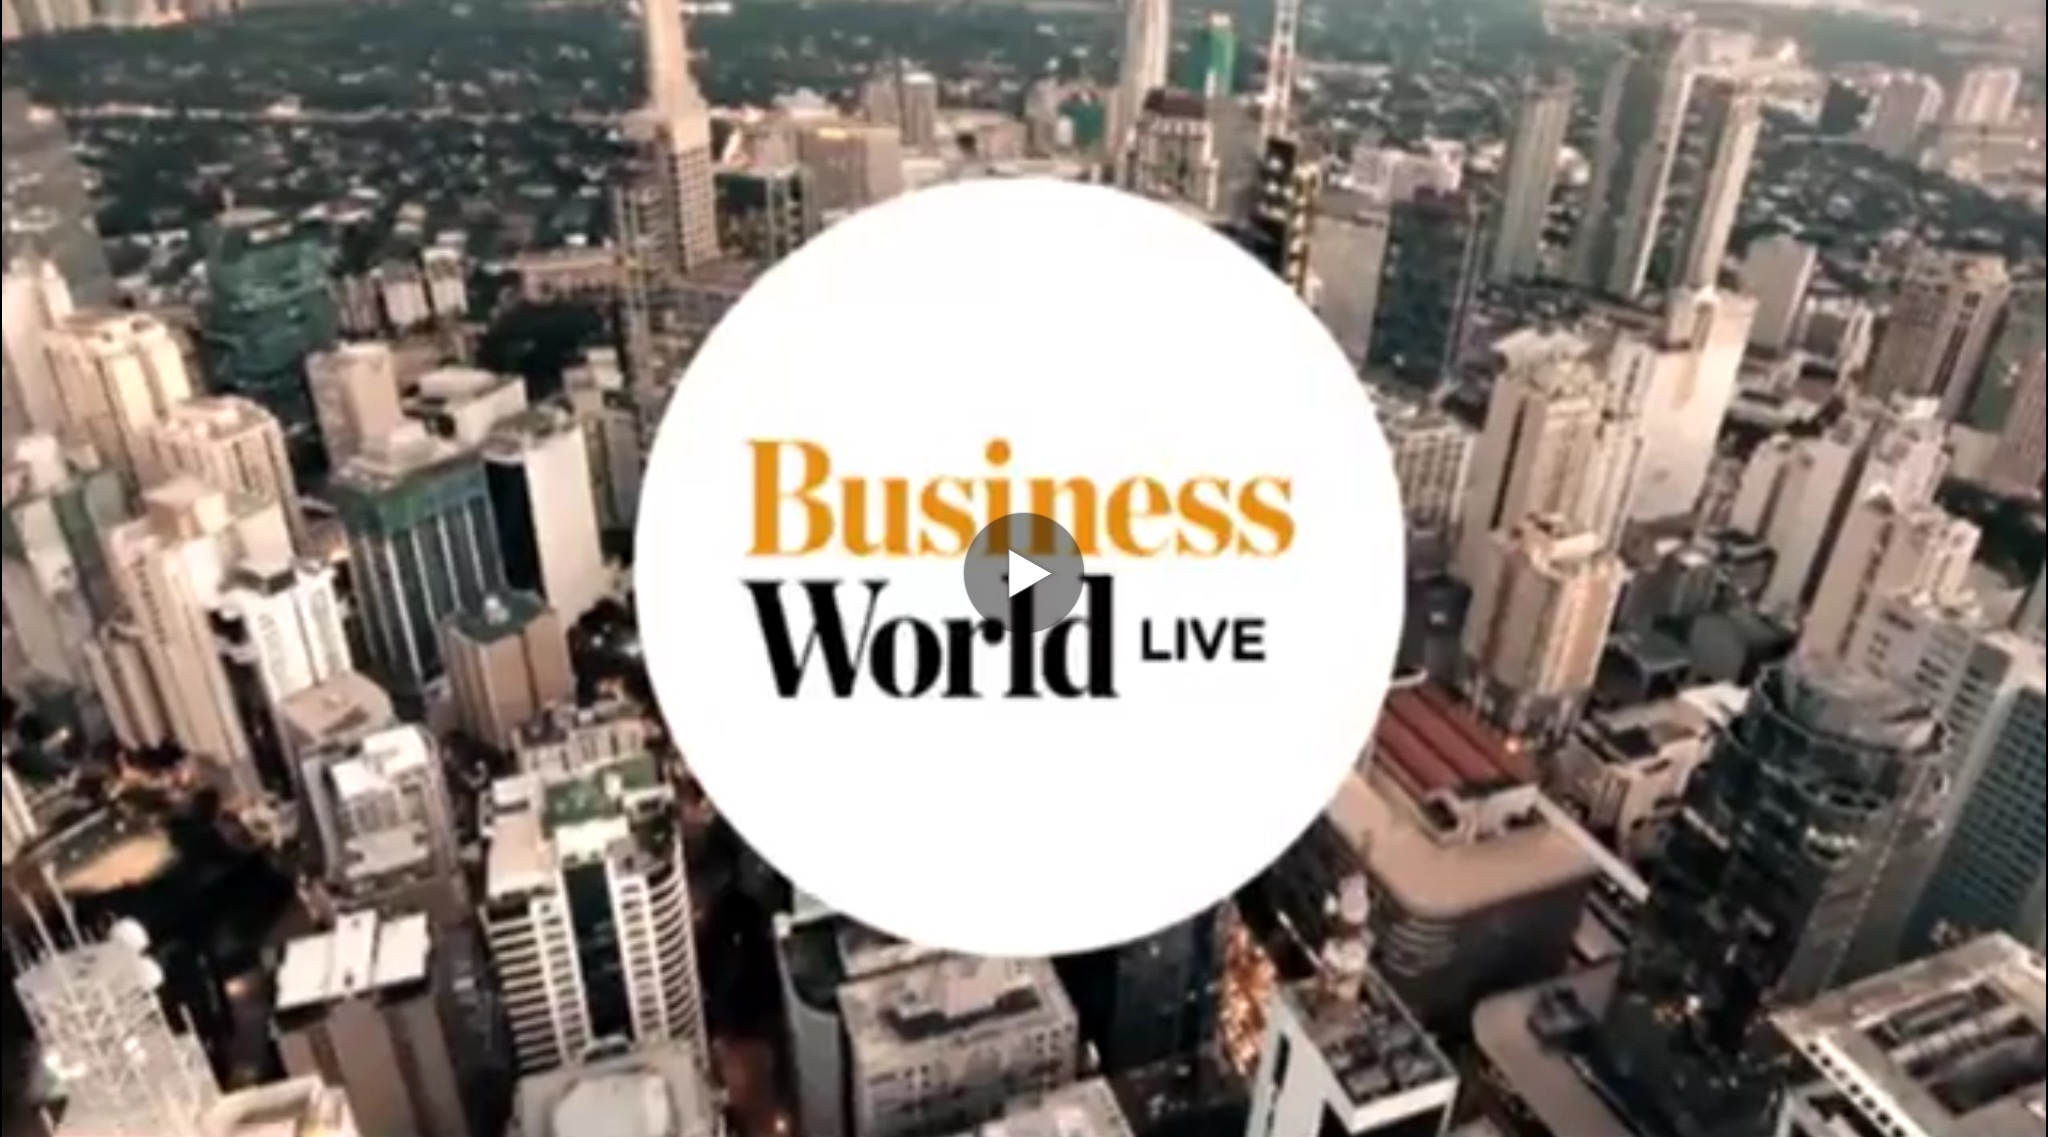 Business World Live